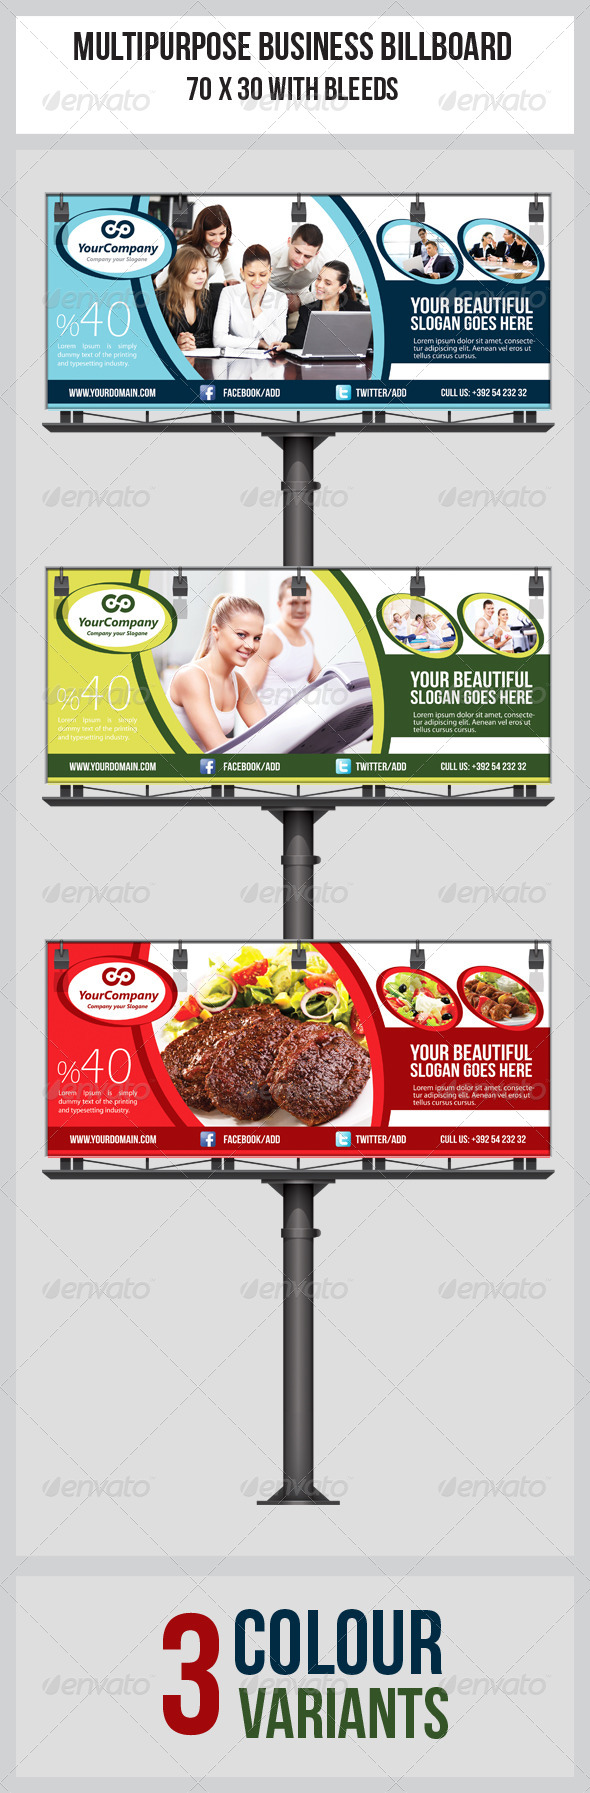 GraphicRiver Multipurpose Business Billboard Template 4978406